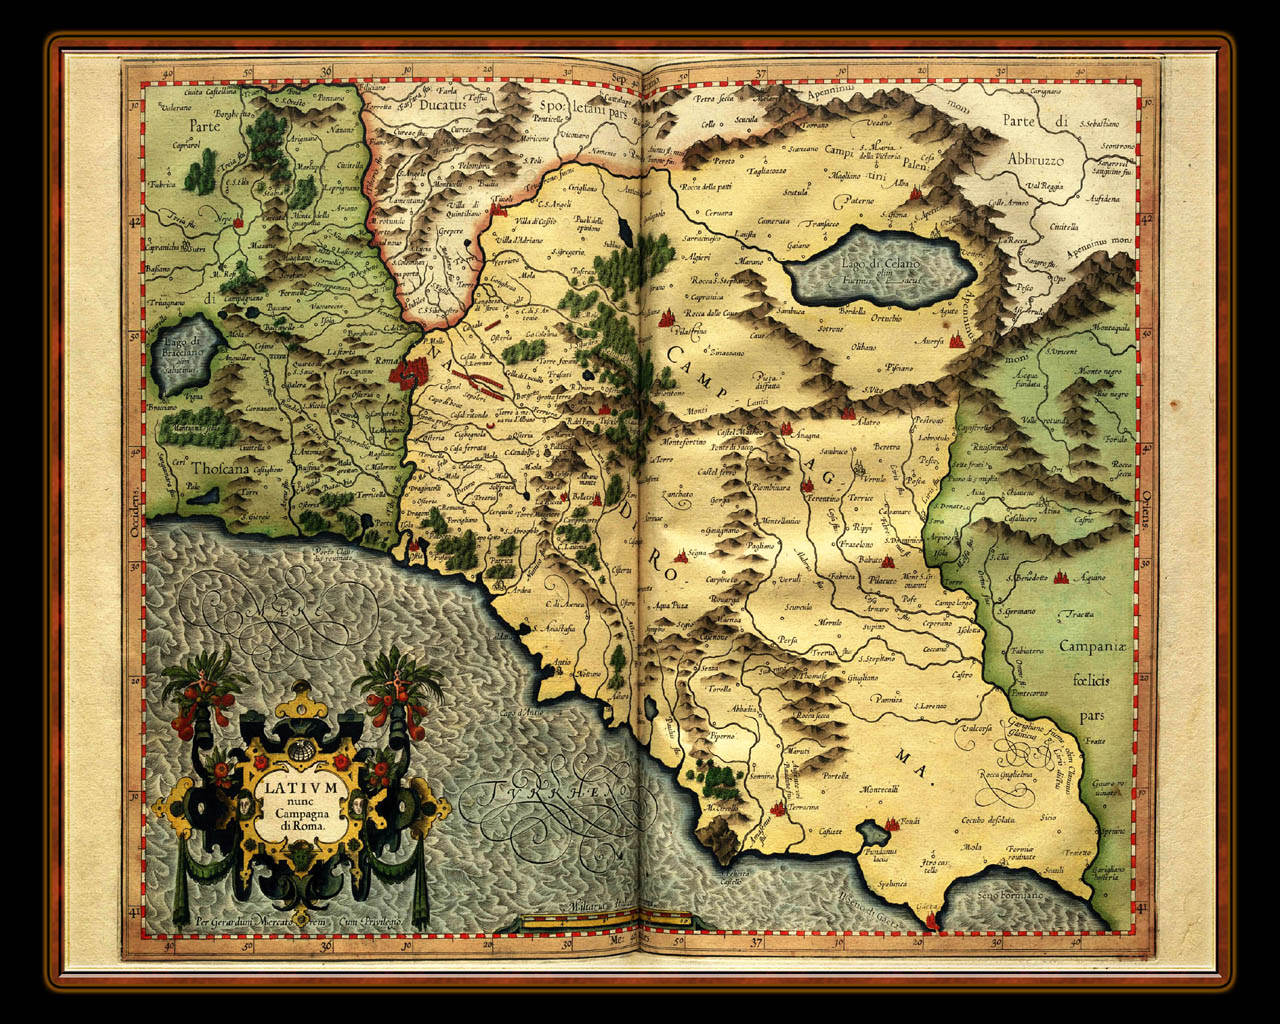 """Gerhard Mercator 1595 World Atlas - Cosmographicae"" - Wallpaper No. 12 of 106. Right click for saving options."